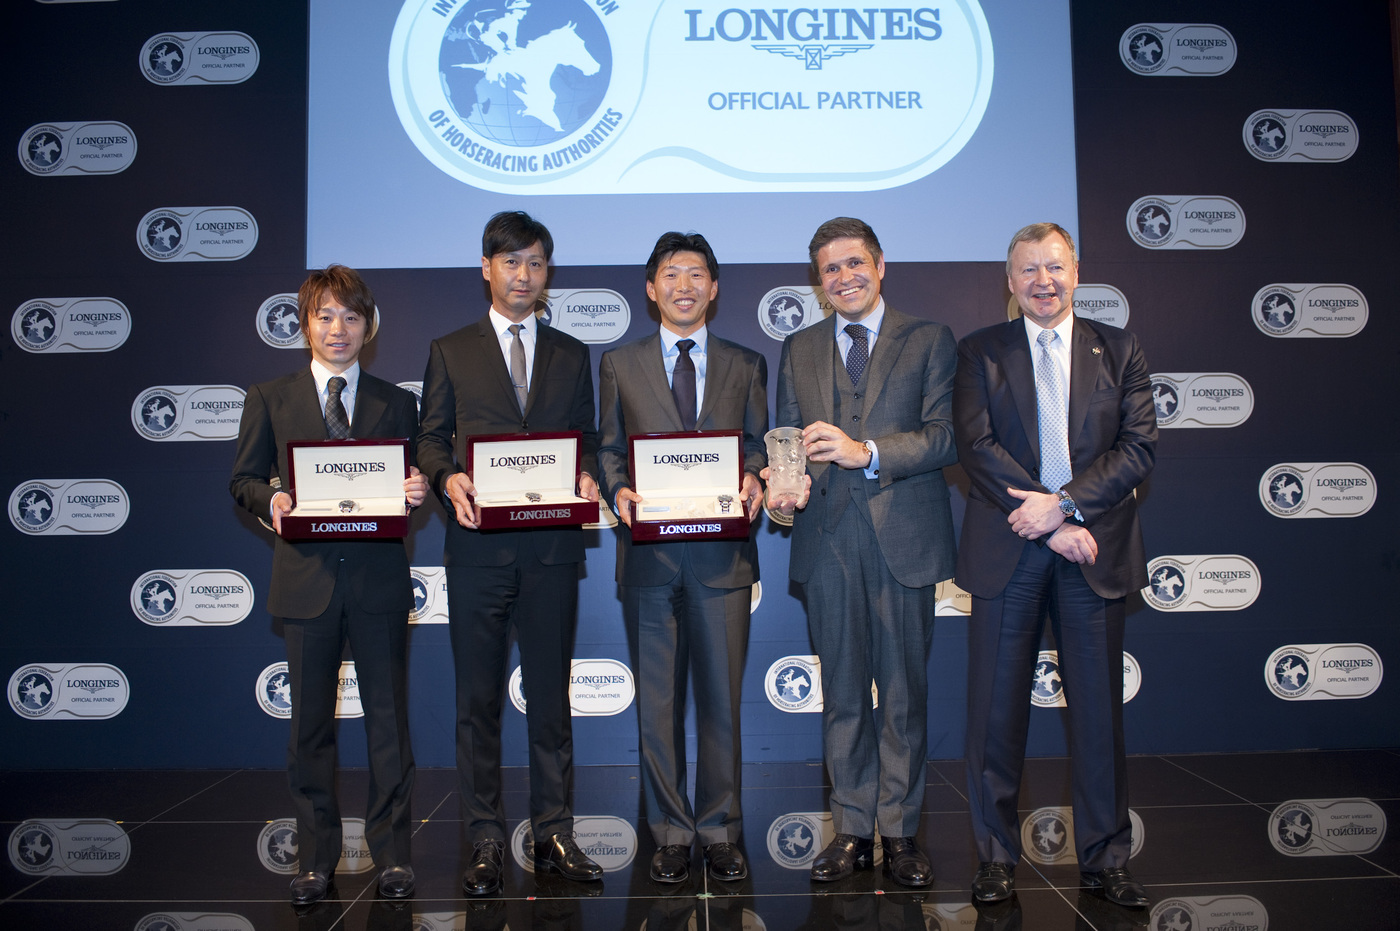 Longines Flat Racing Event: Longines and the International Federation of Horseracing Authorities (IFHA) honoured ORFEVRE as the co-third highest-rated horse in the world for 2013 2